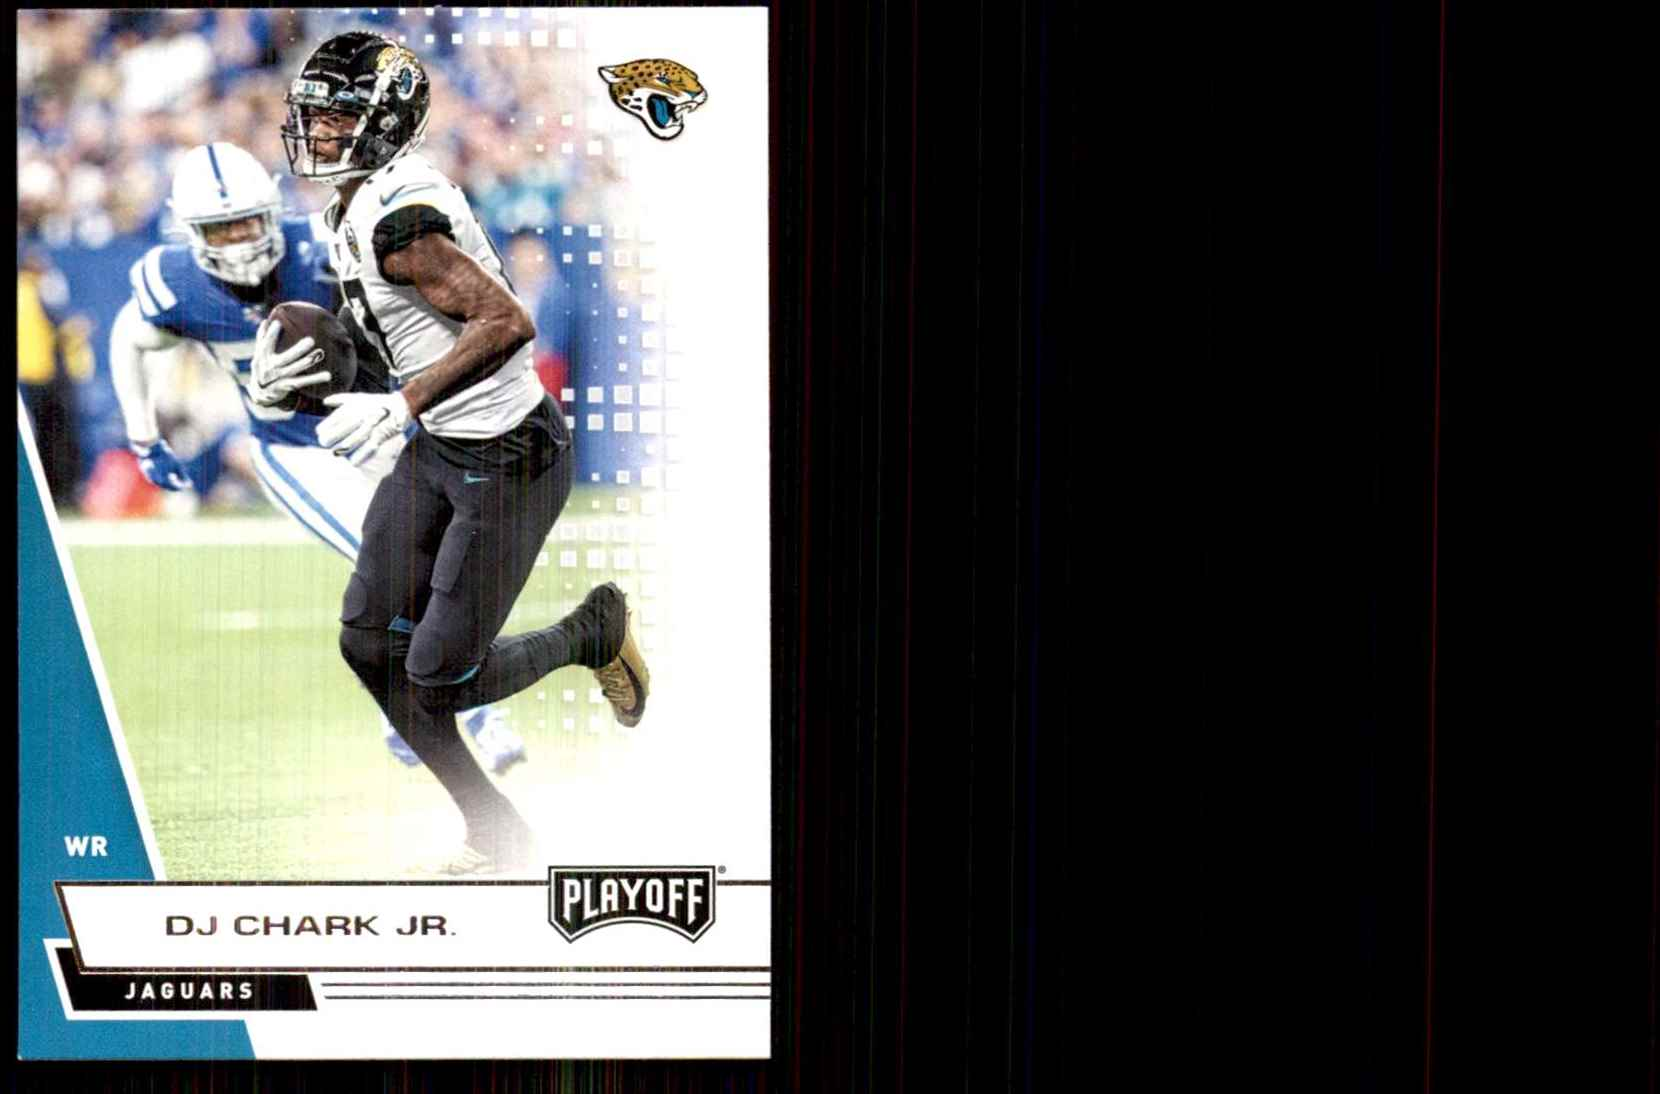 2020 Playoff D.J. Chark JR. #63 card front image